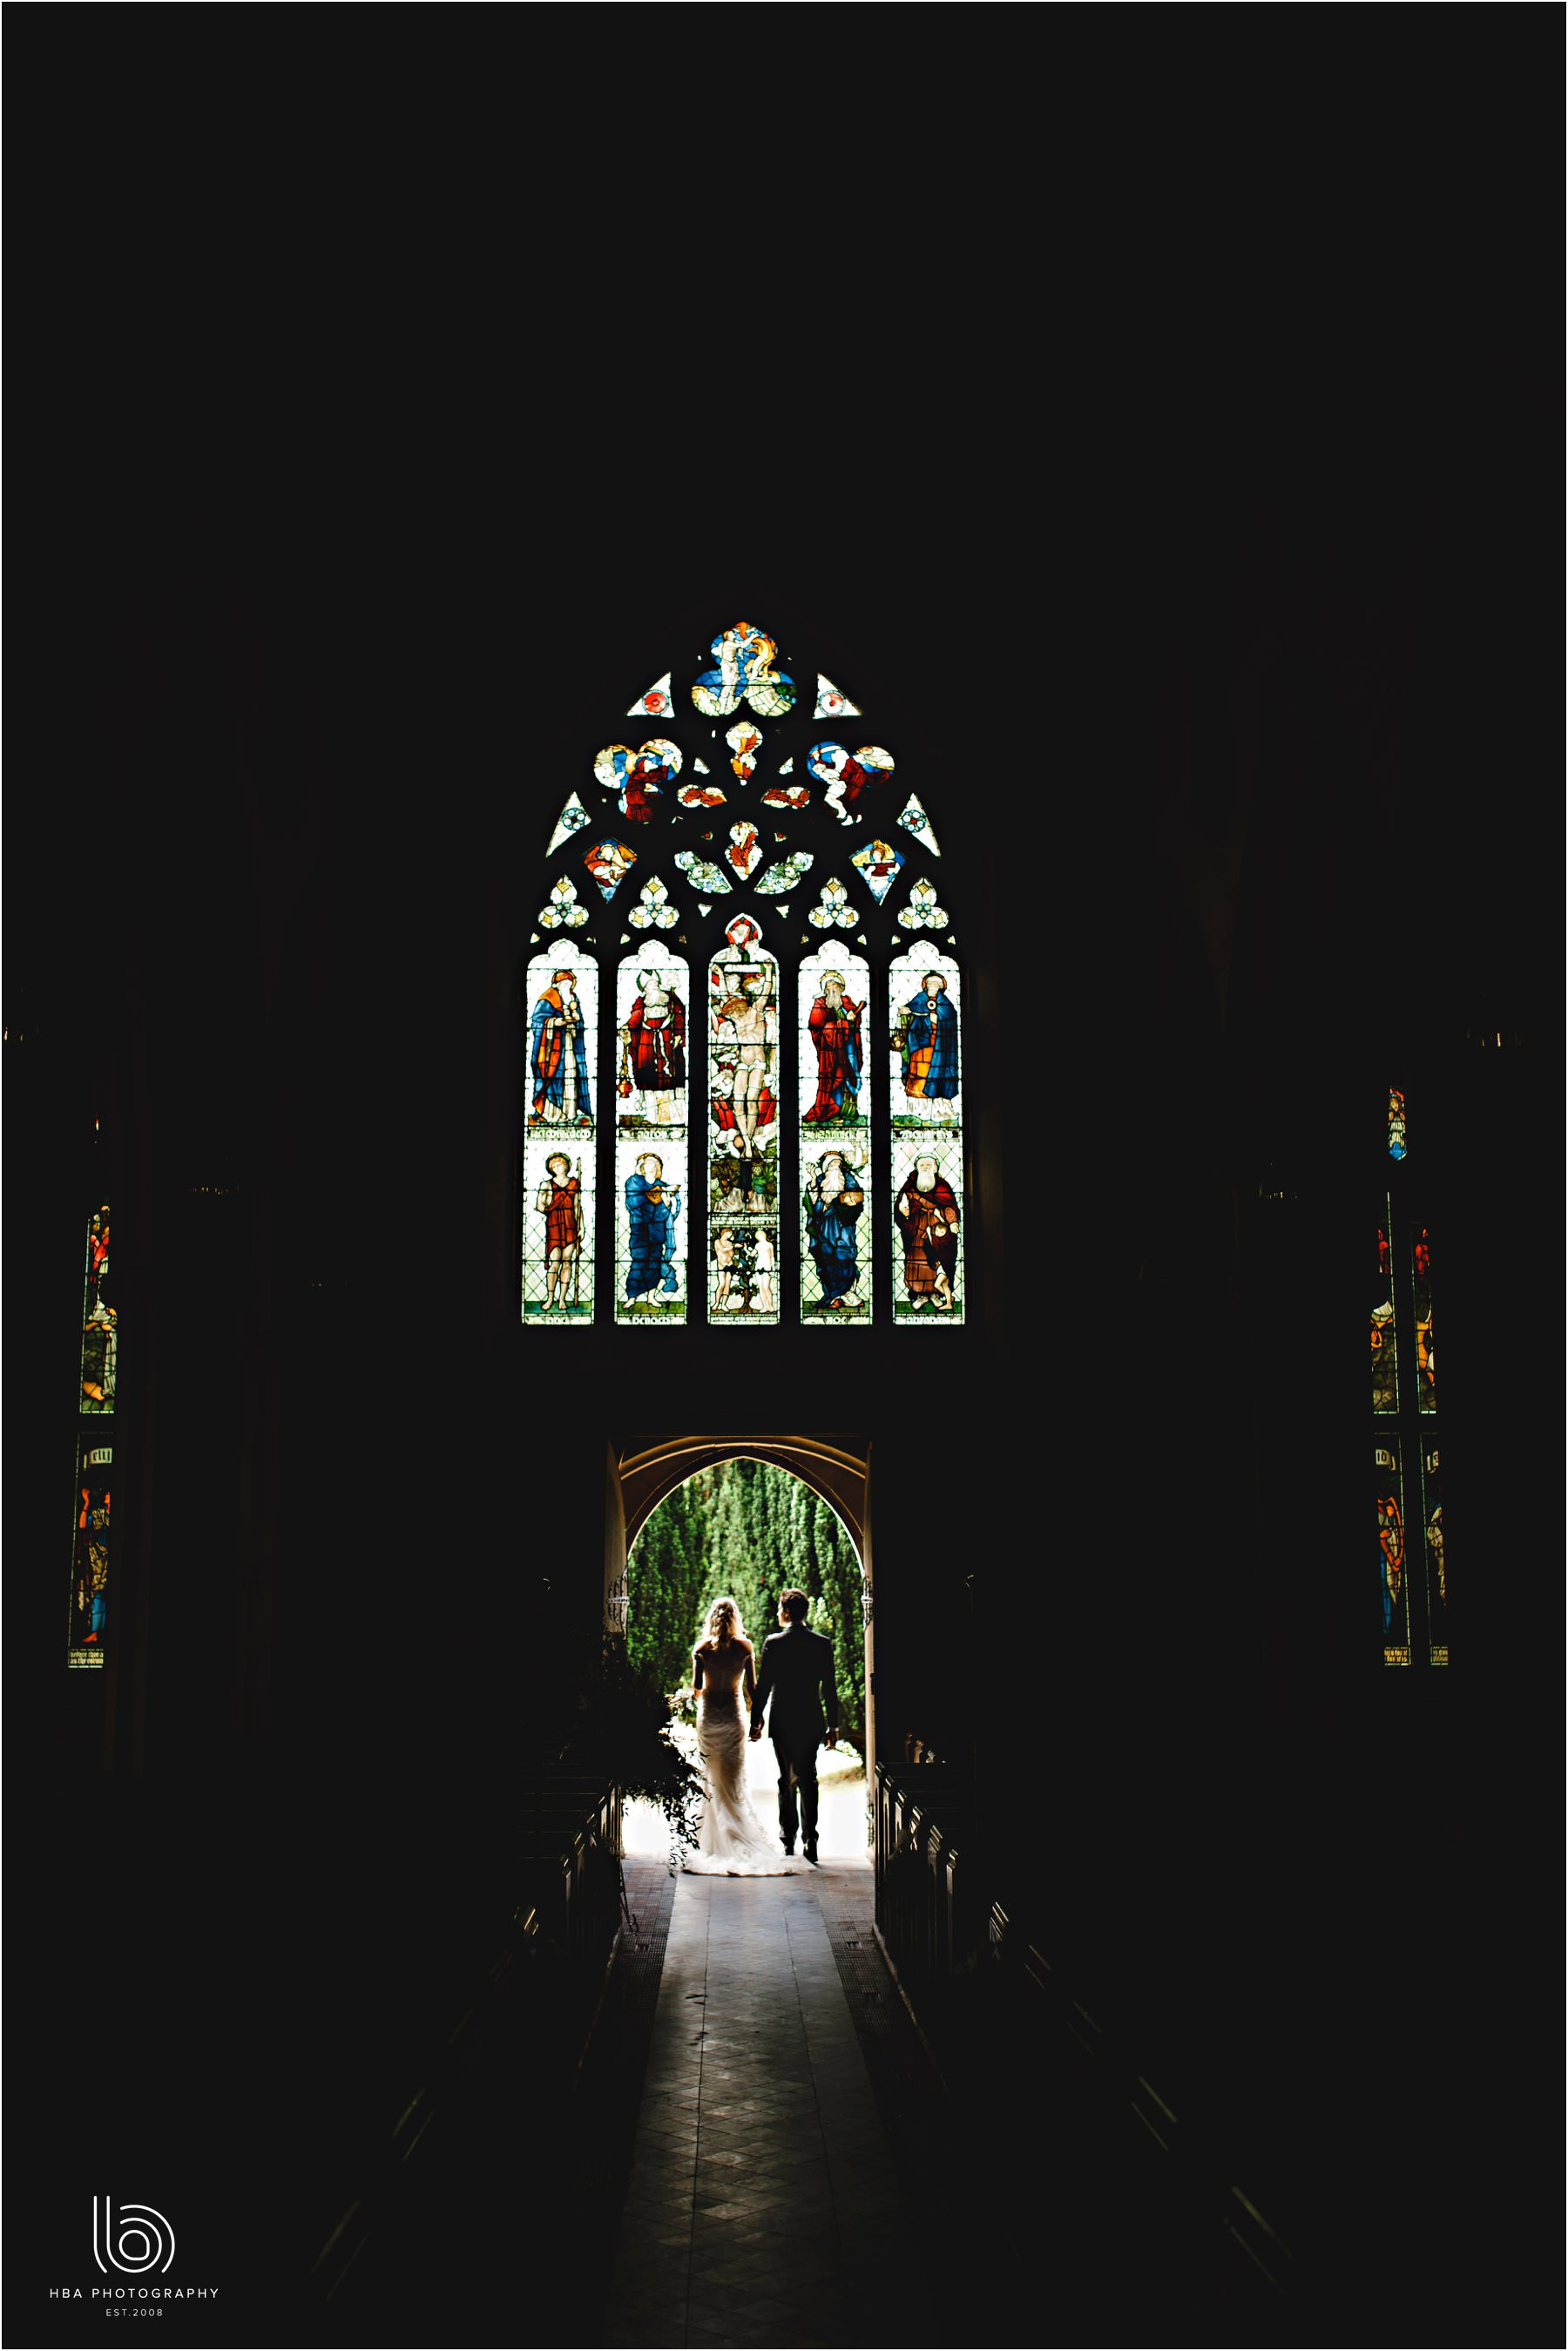 the bride & groom in silhouette att he church door